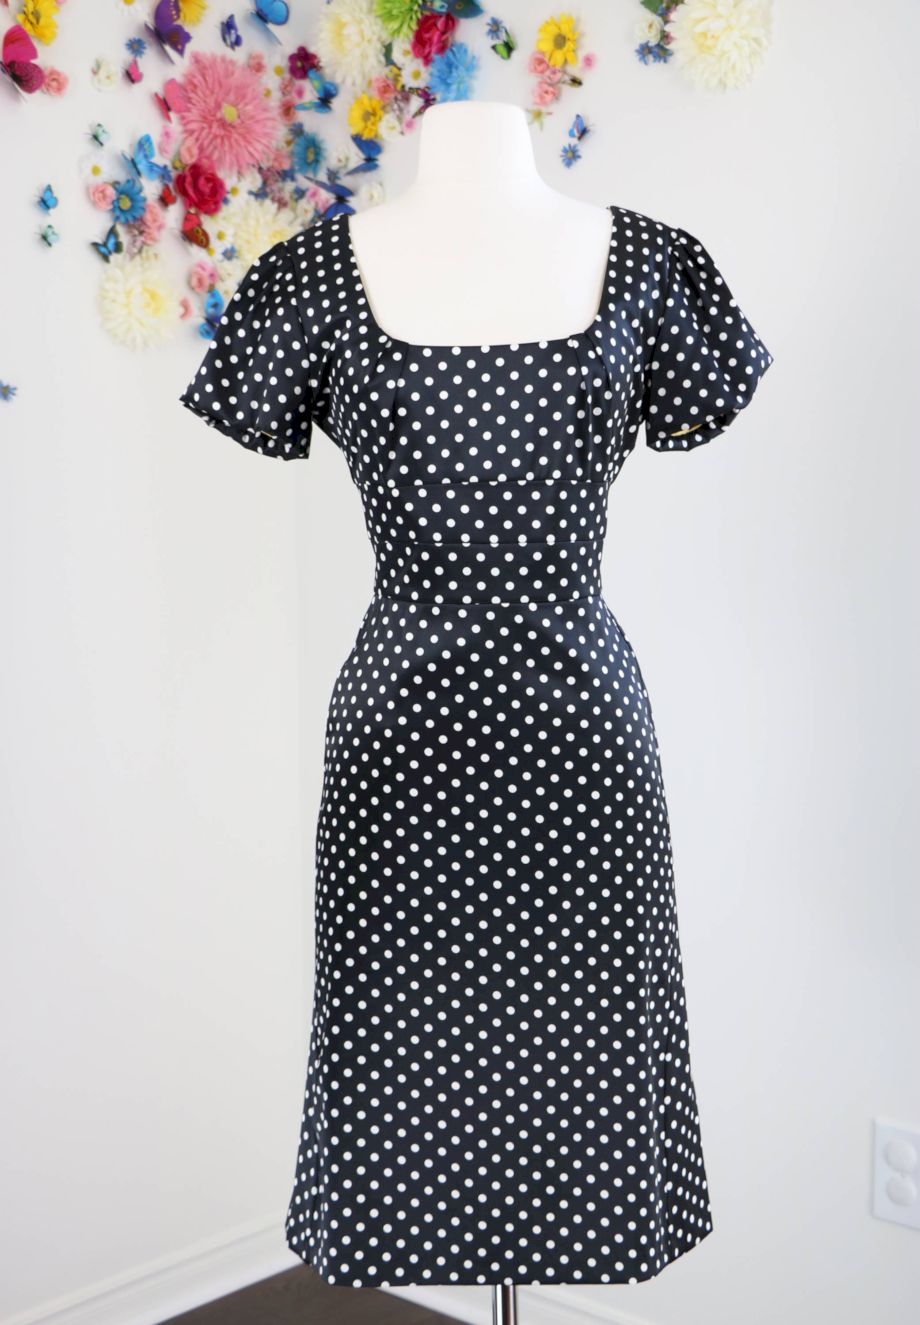 Polkadot short dress 42